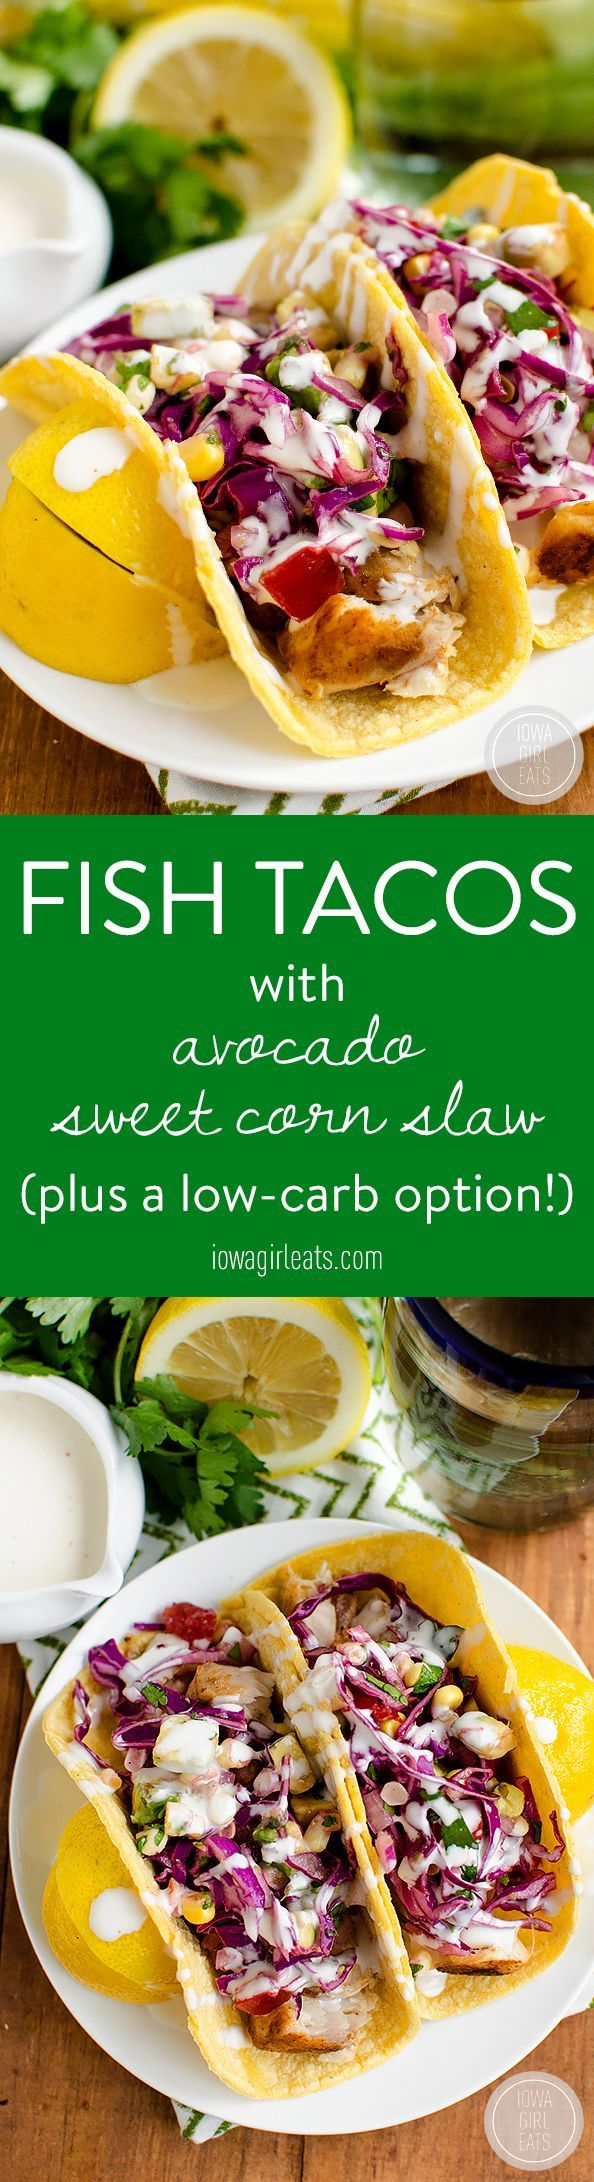 Fish tacos with avocado sweet corn slaw recipe tacos for Slaw recipe for fish tacos